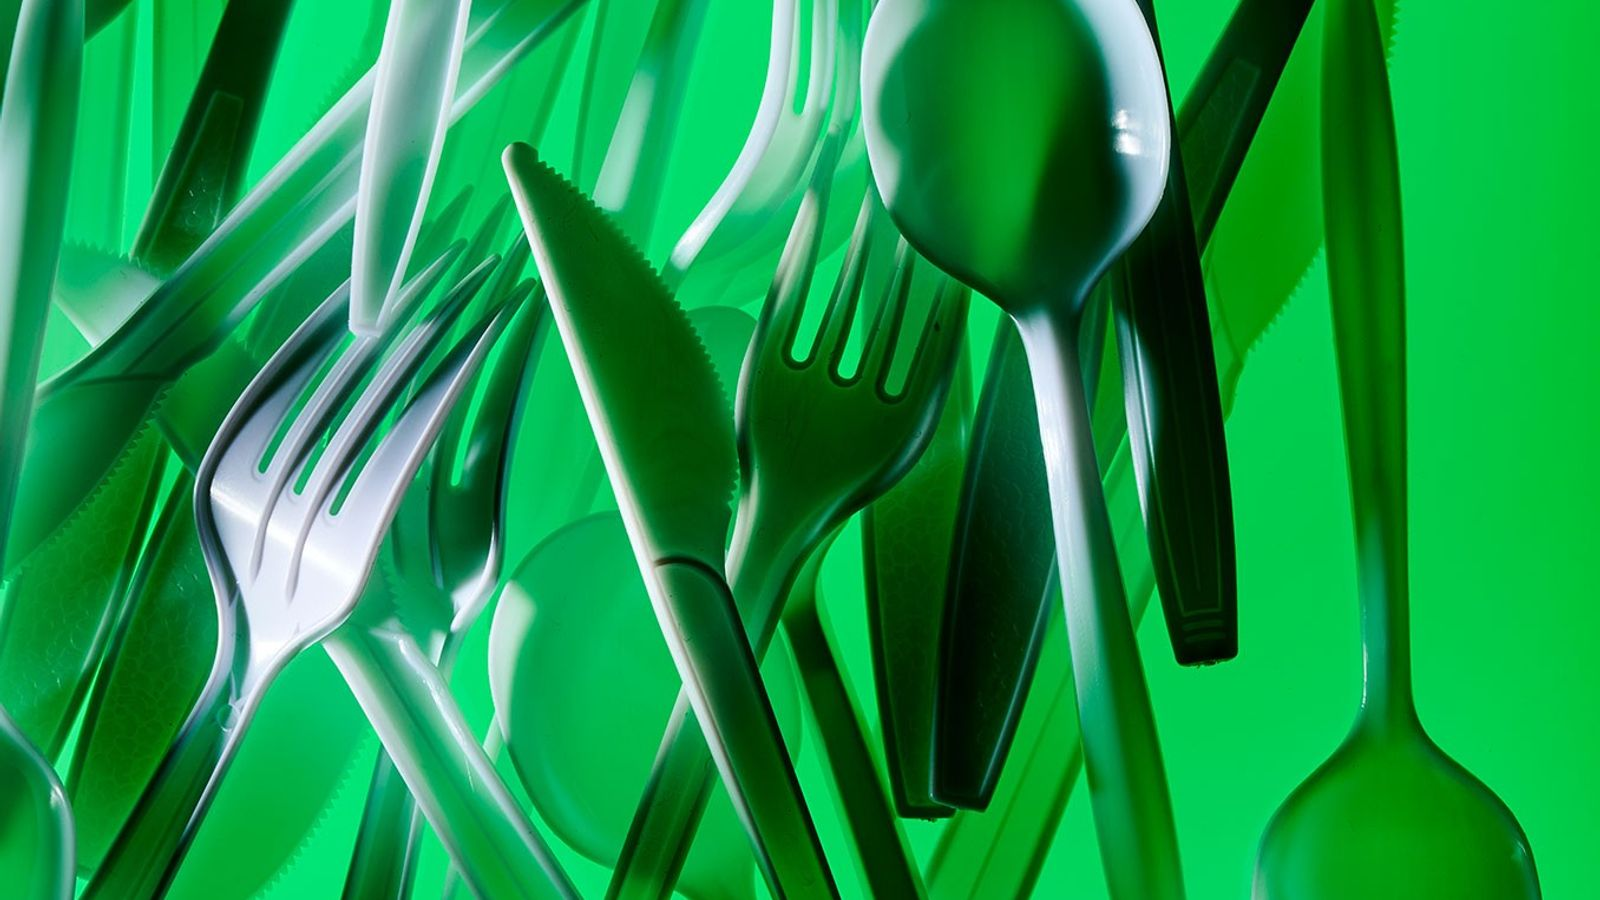 Like many plastic items, cutlery often finds its way into the environment, where it poses dangers ...